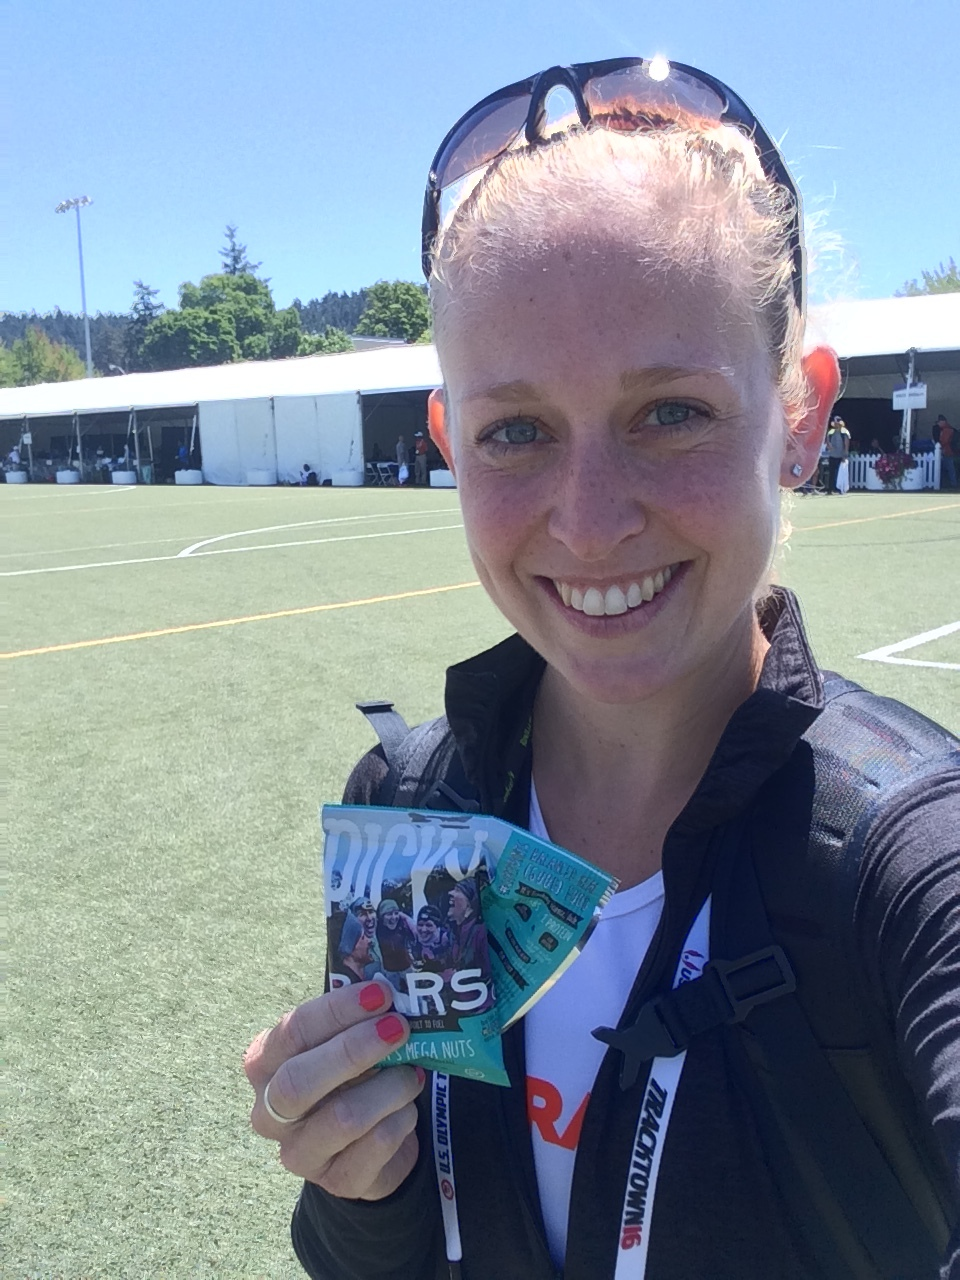 Post-race at the Olympic Trials, refueling with my favorite flavor of Picky Bars!